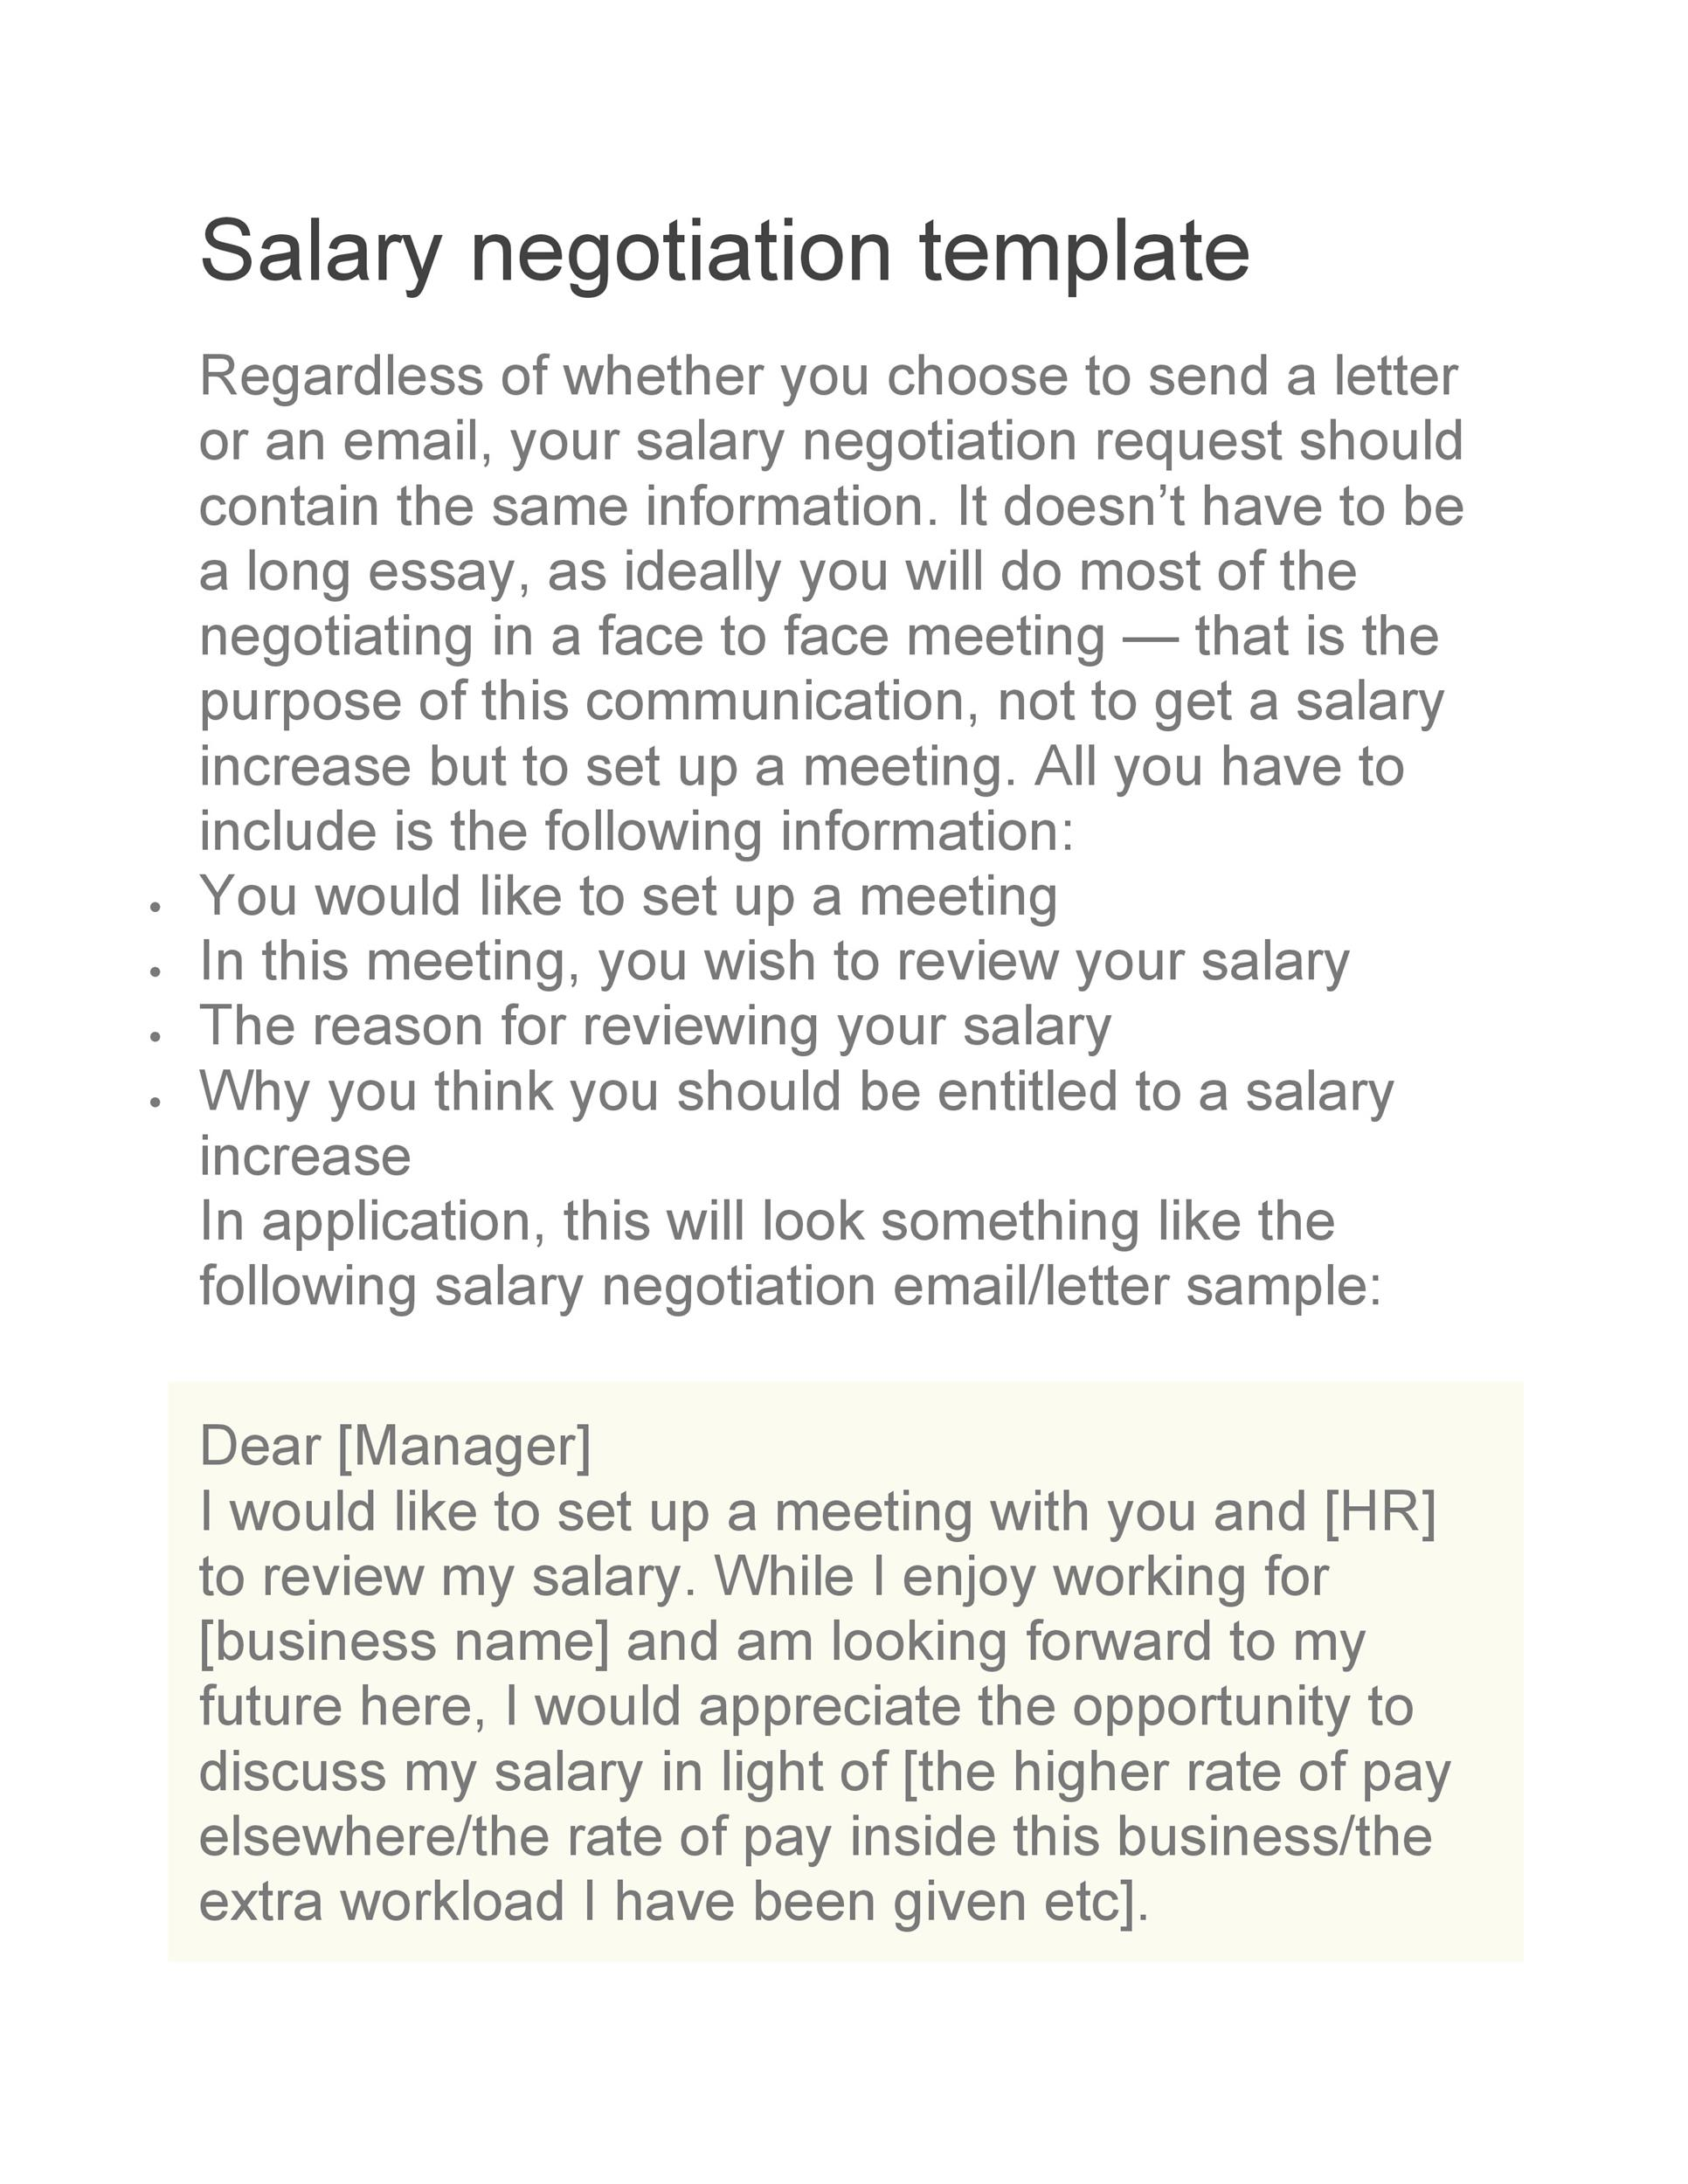 Free salary negotiation letter 27